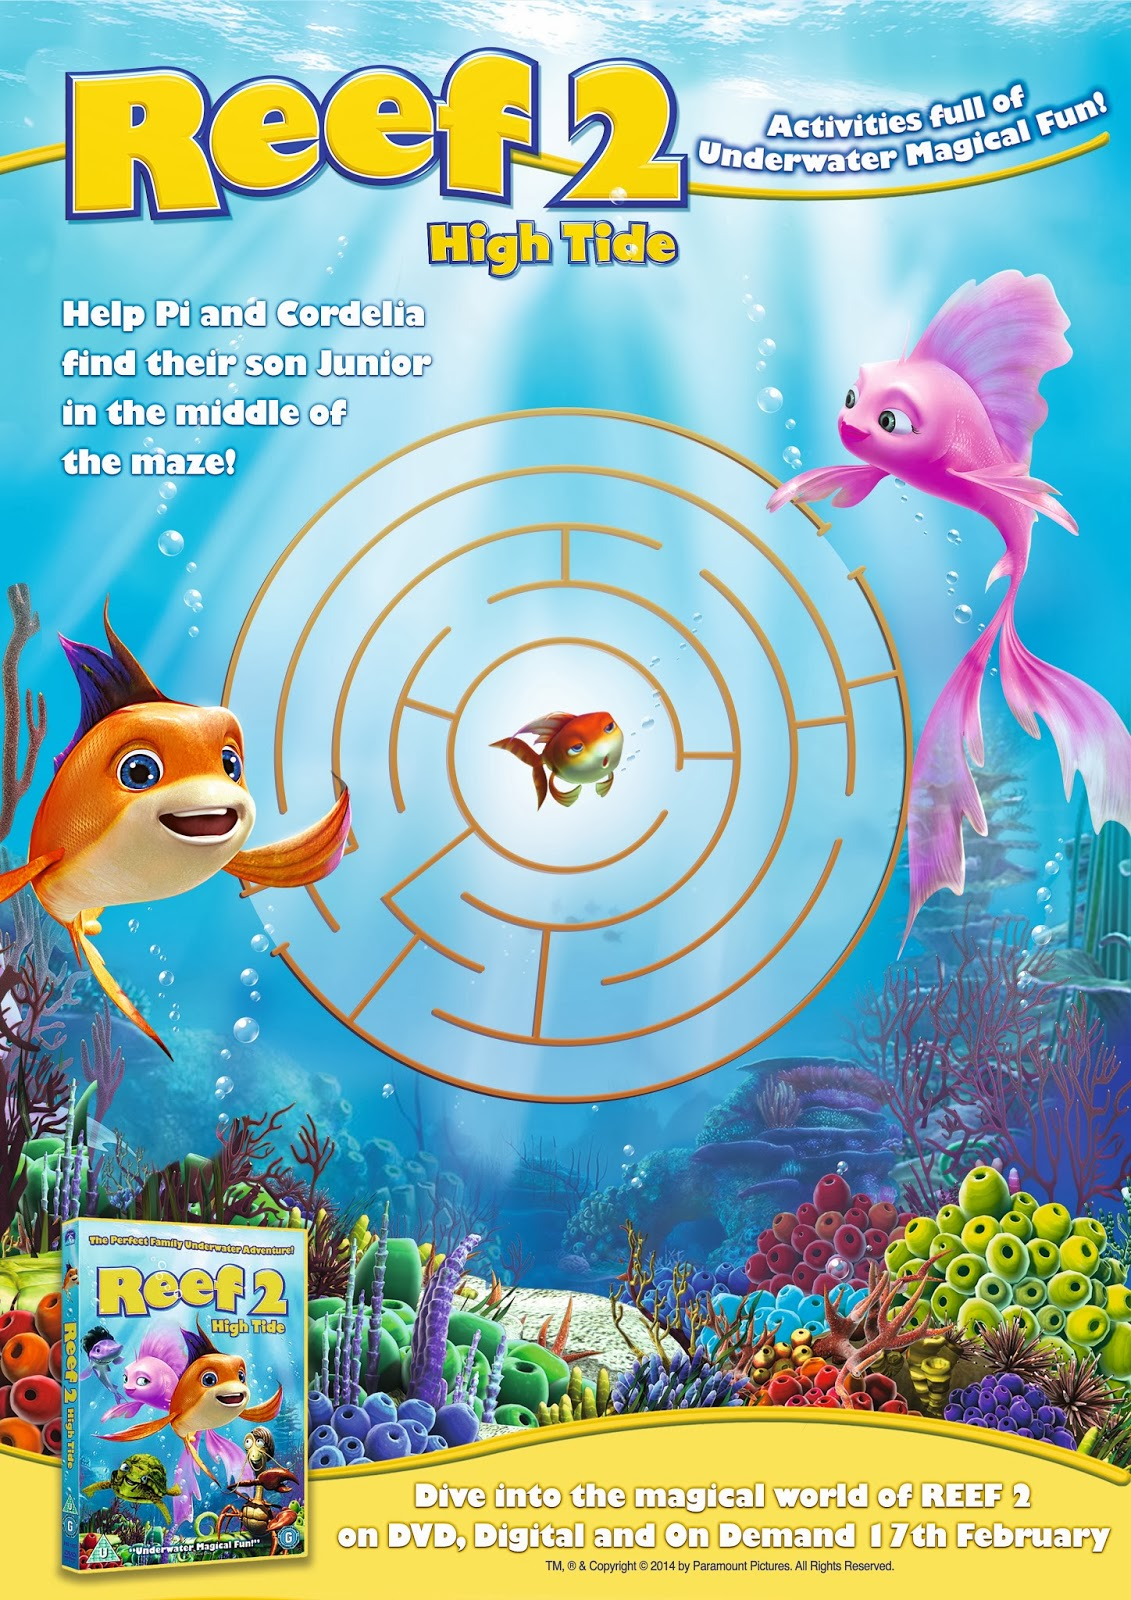 My Mummy S Pennies Win A Copy Of Reef 2 On Dvd And Have Some Underwater Fun